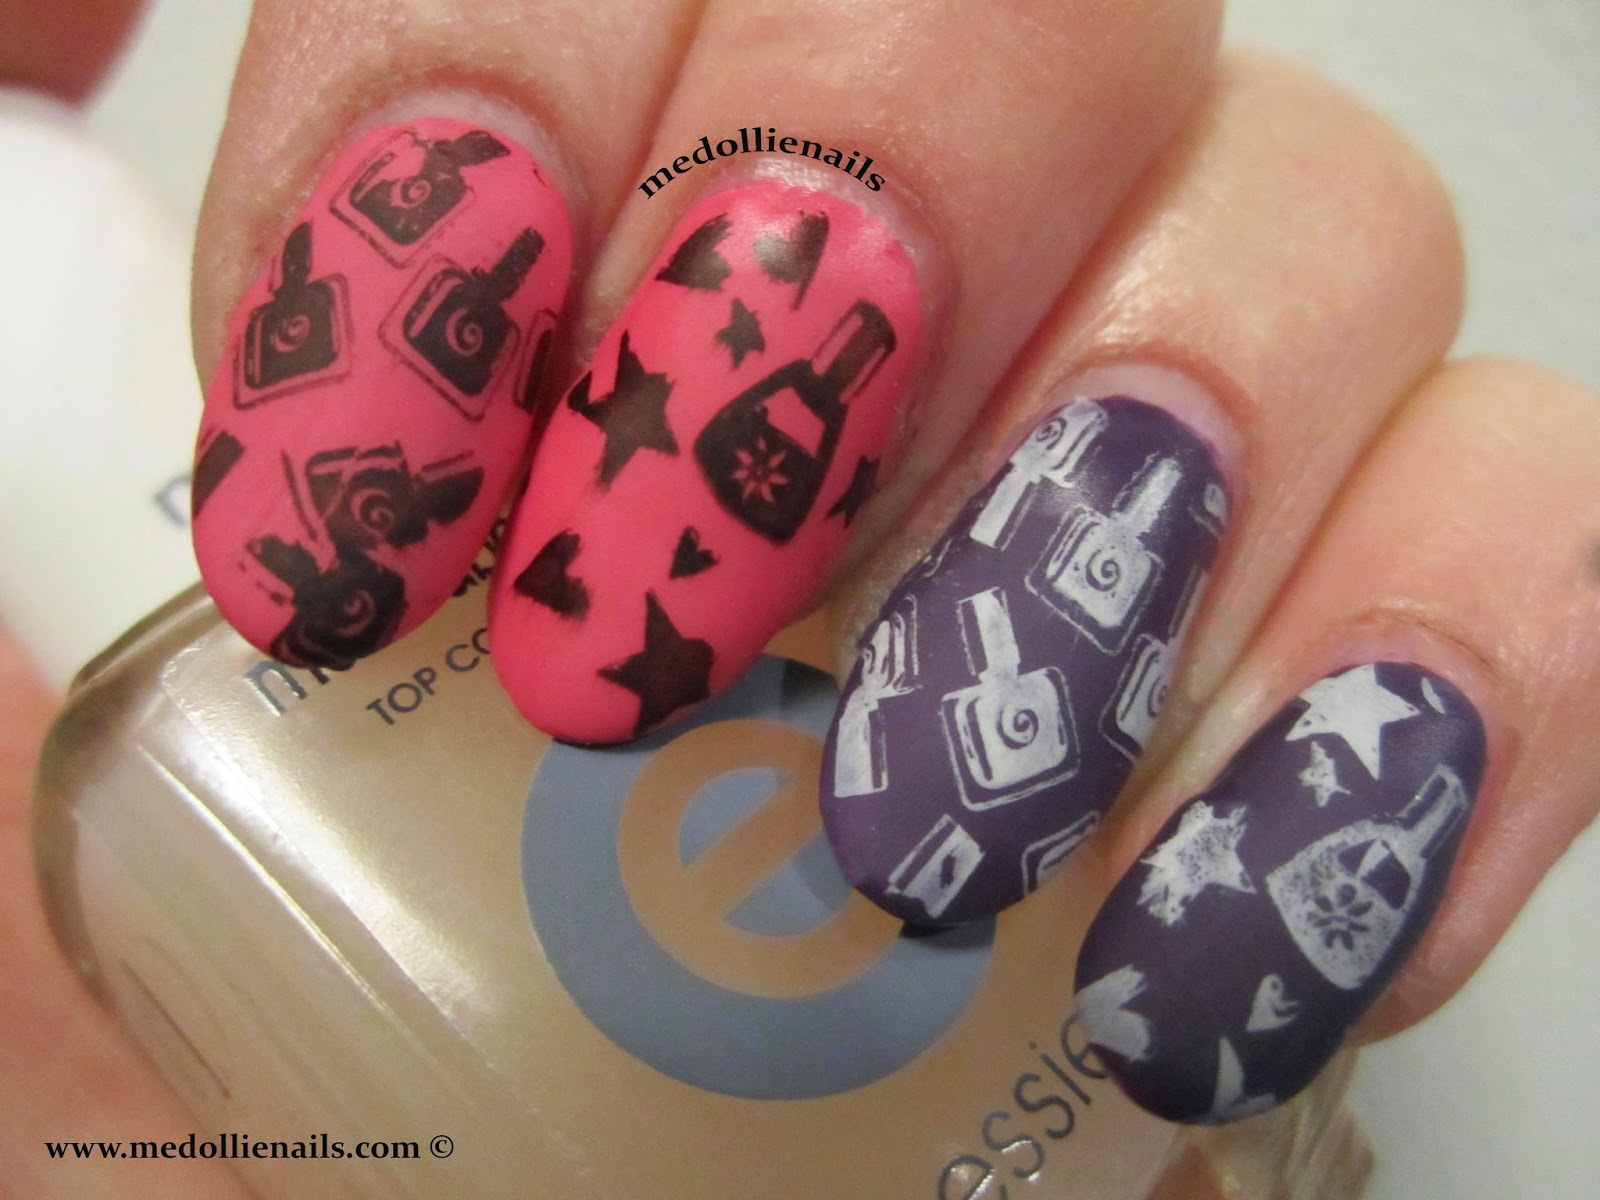 I Really Love This Super Cute And Awesome Nail Polish Stamping Plate From Www Bornpretty Here Is The Direct Link To